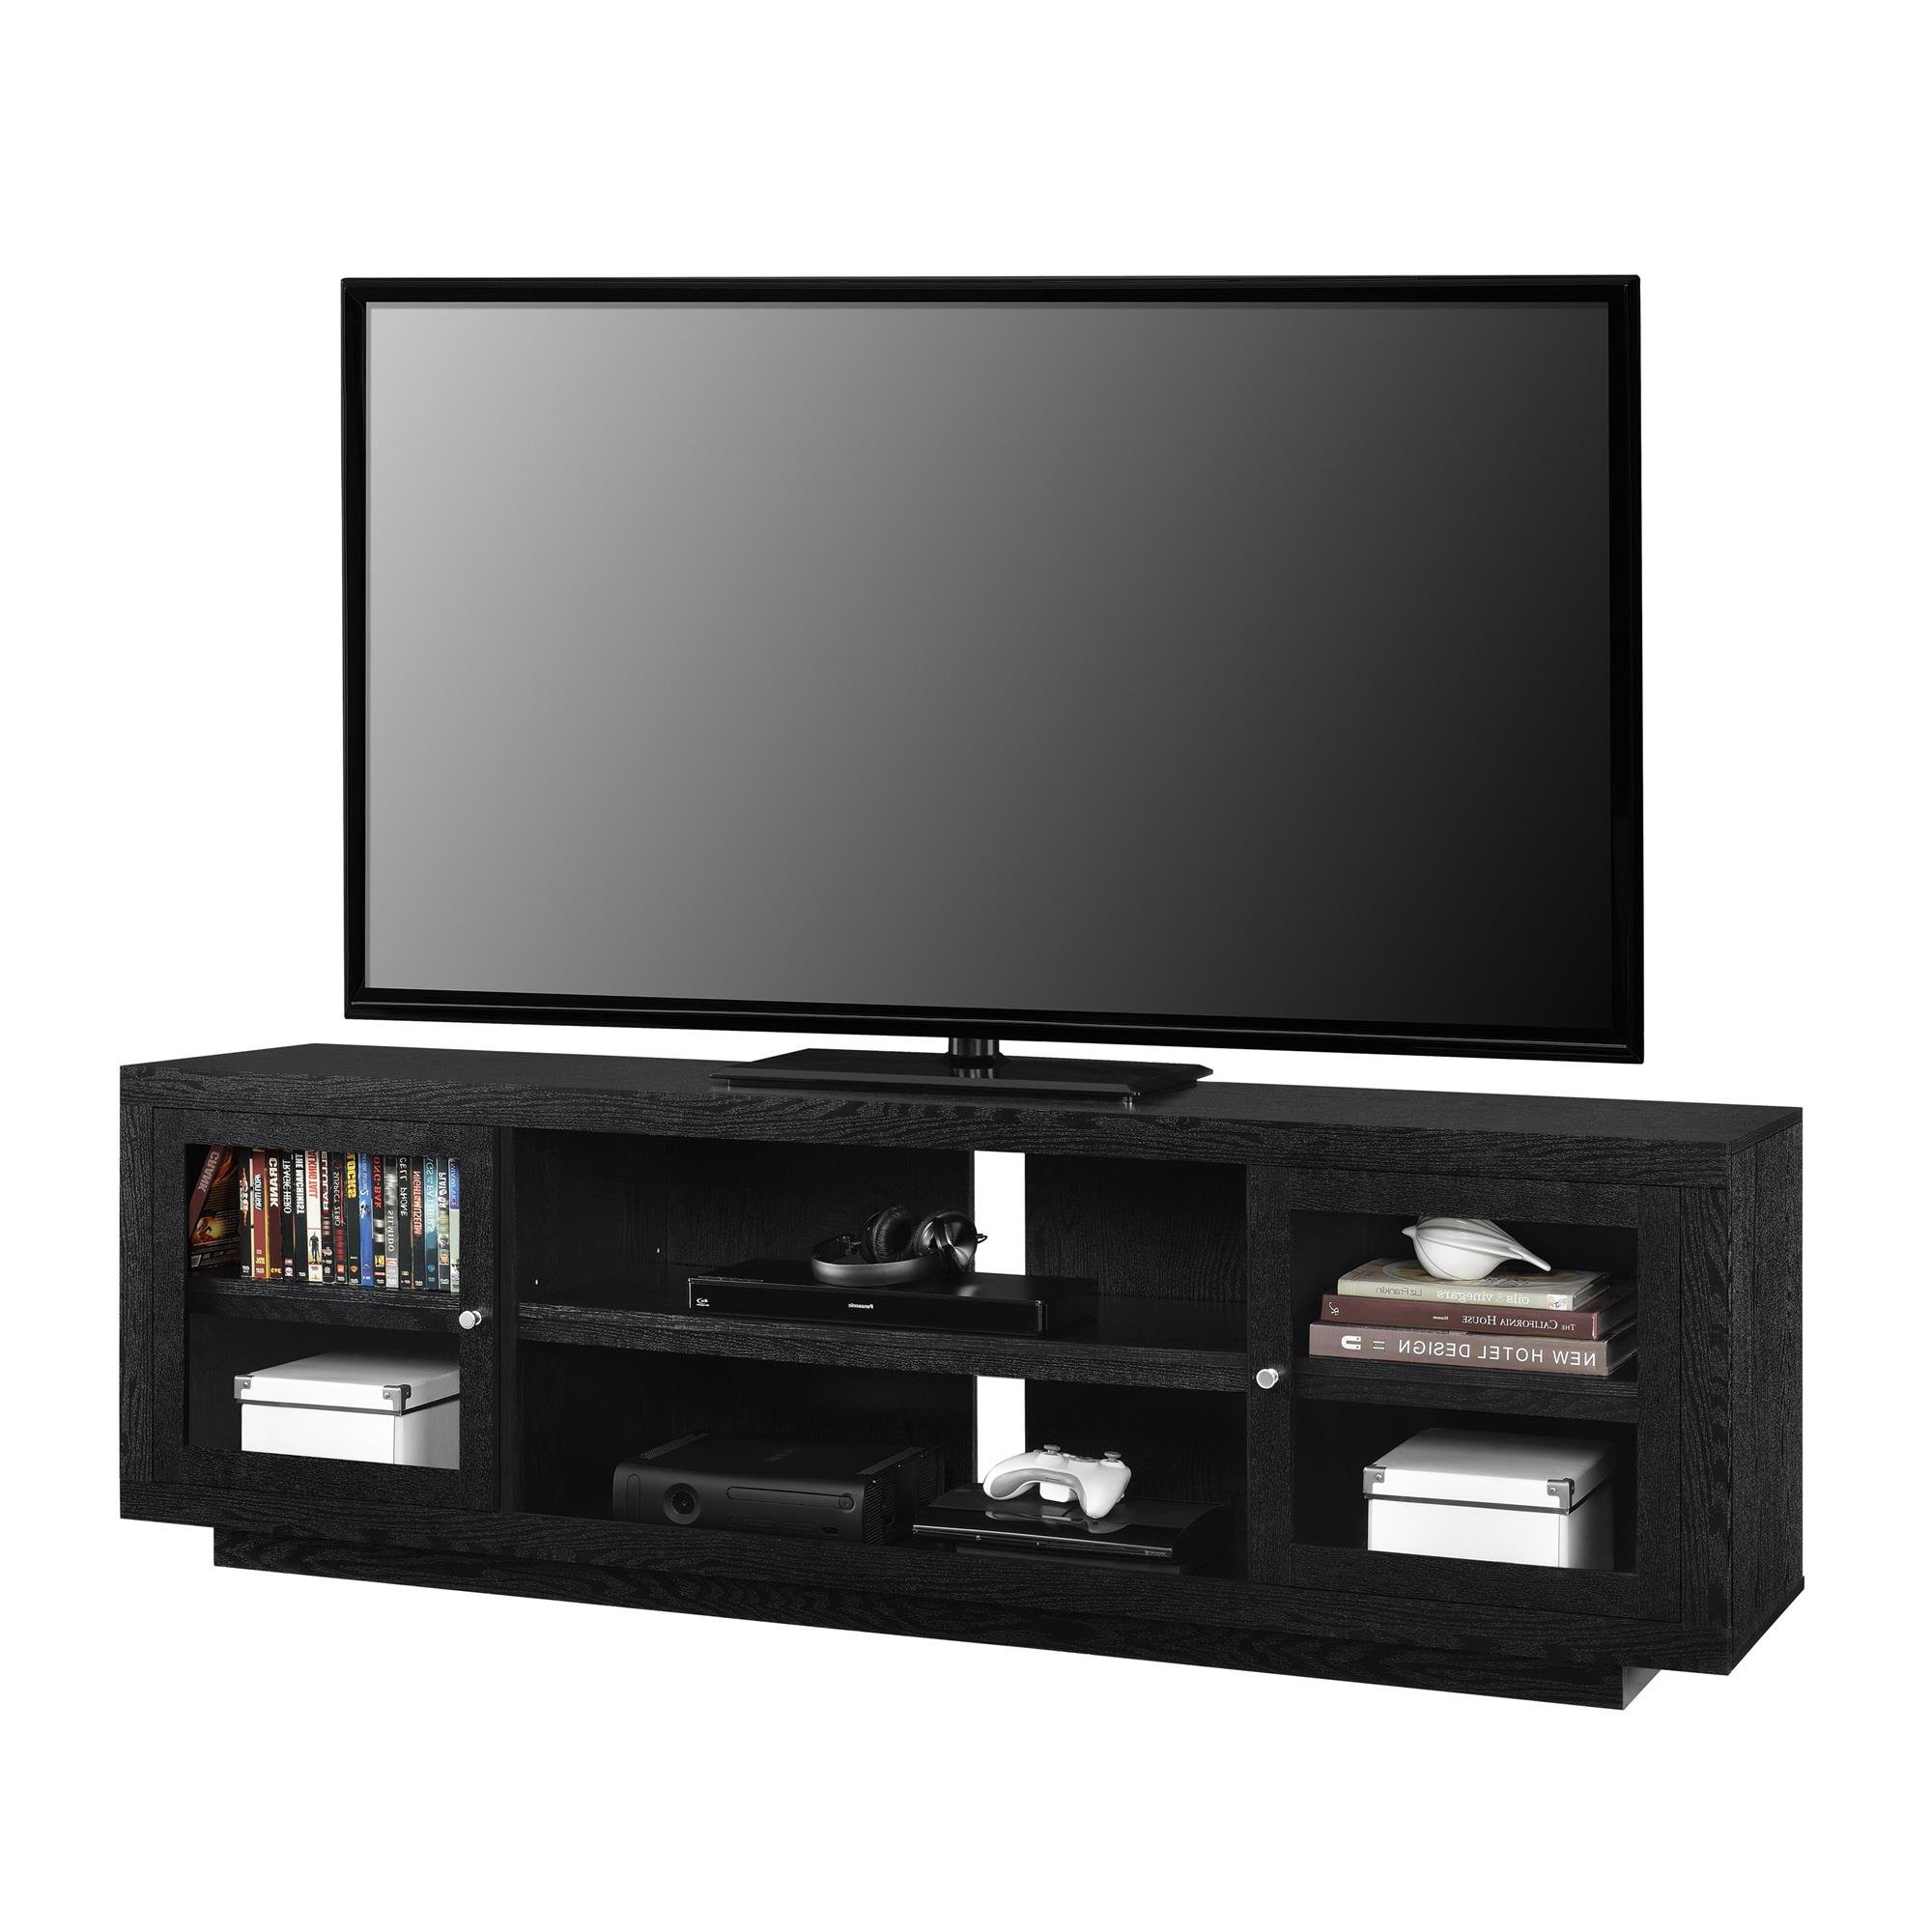 Trendy Glass Tv Cabinets With Doors Within Tv Cabinet With Glass Doors (View 17 of 20)